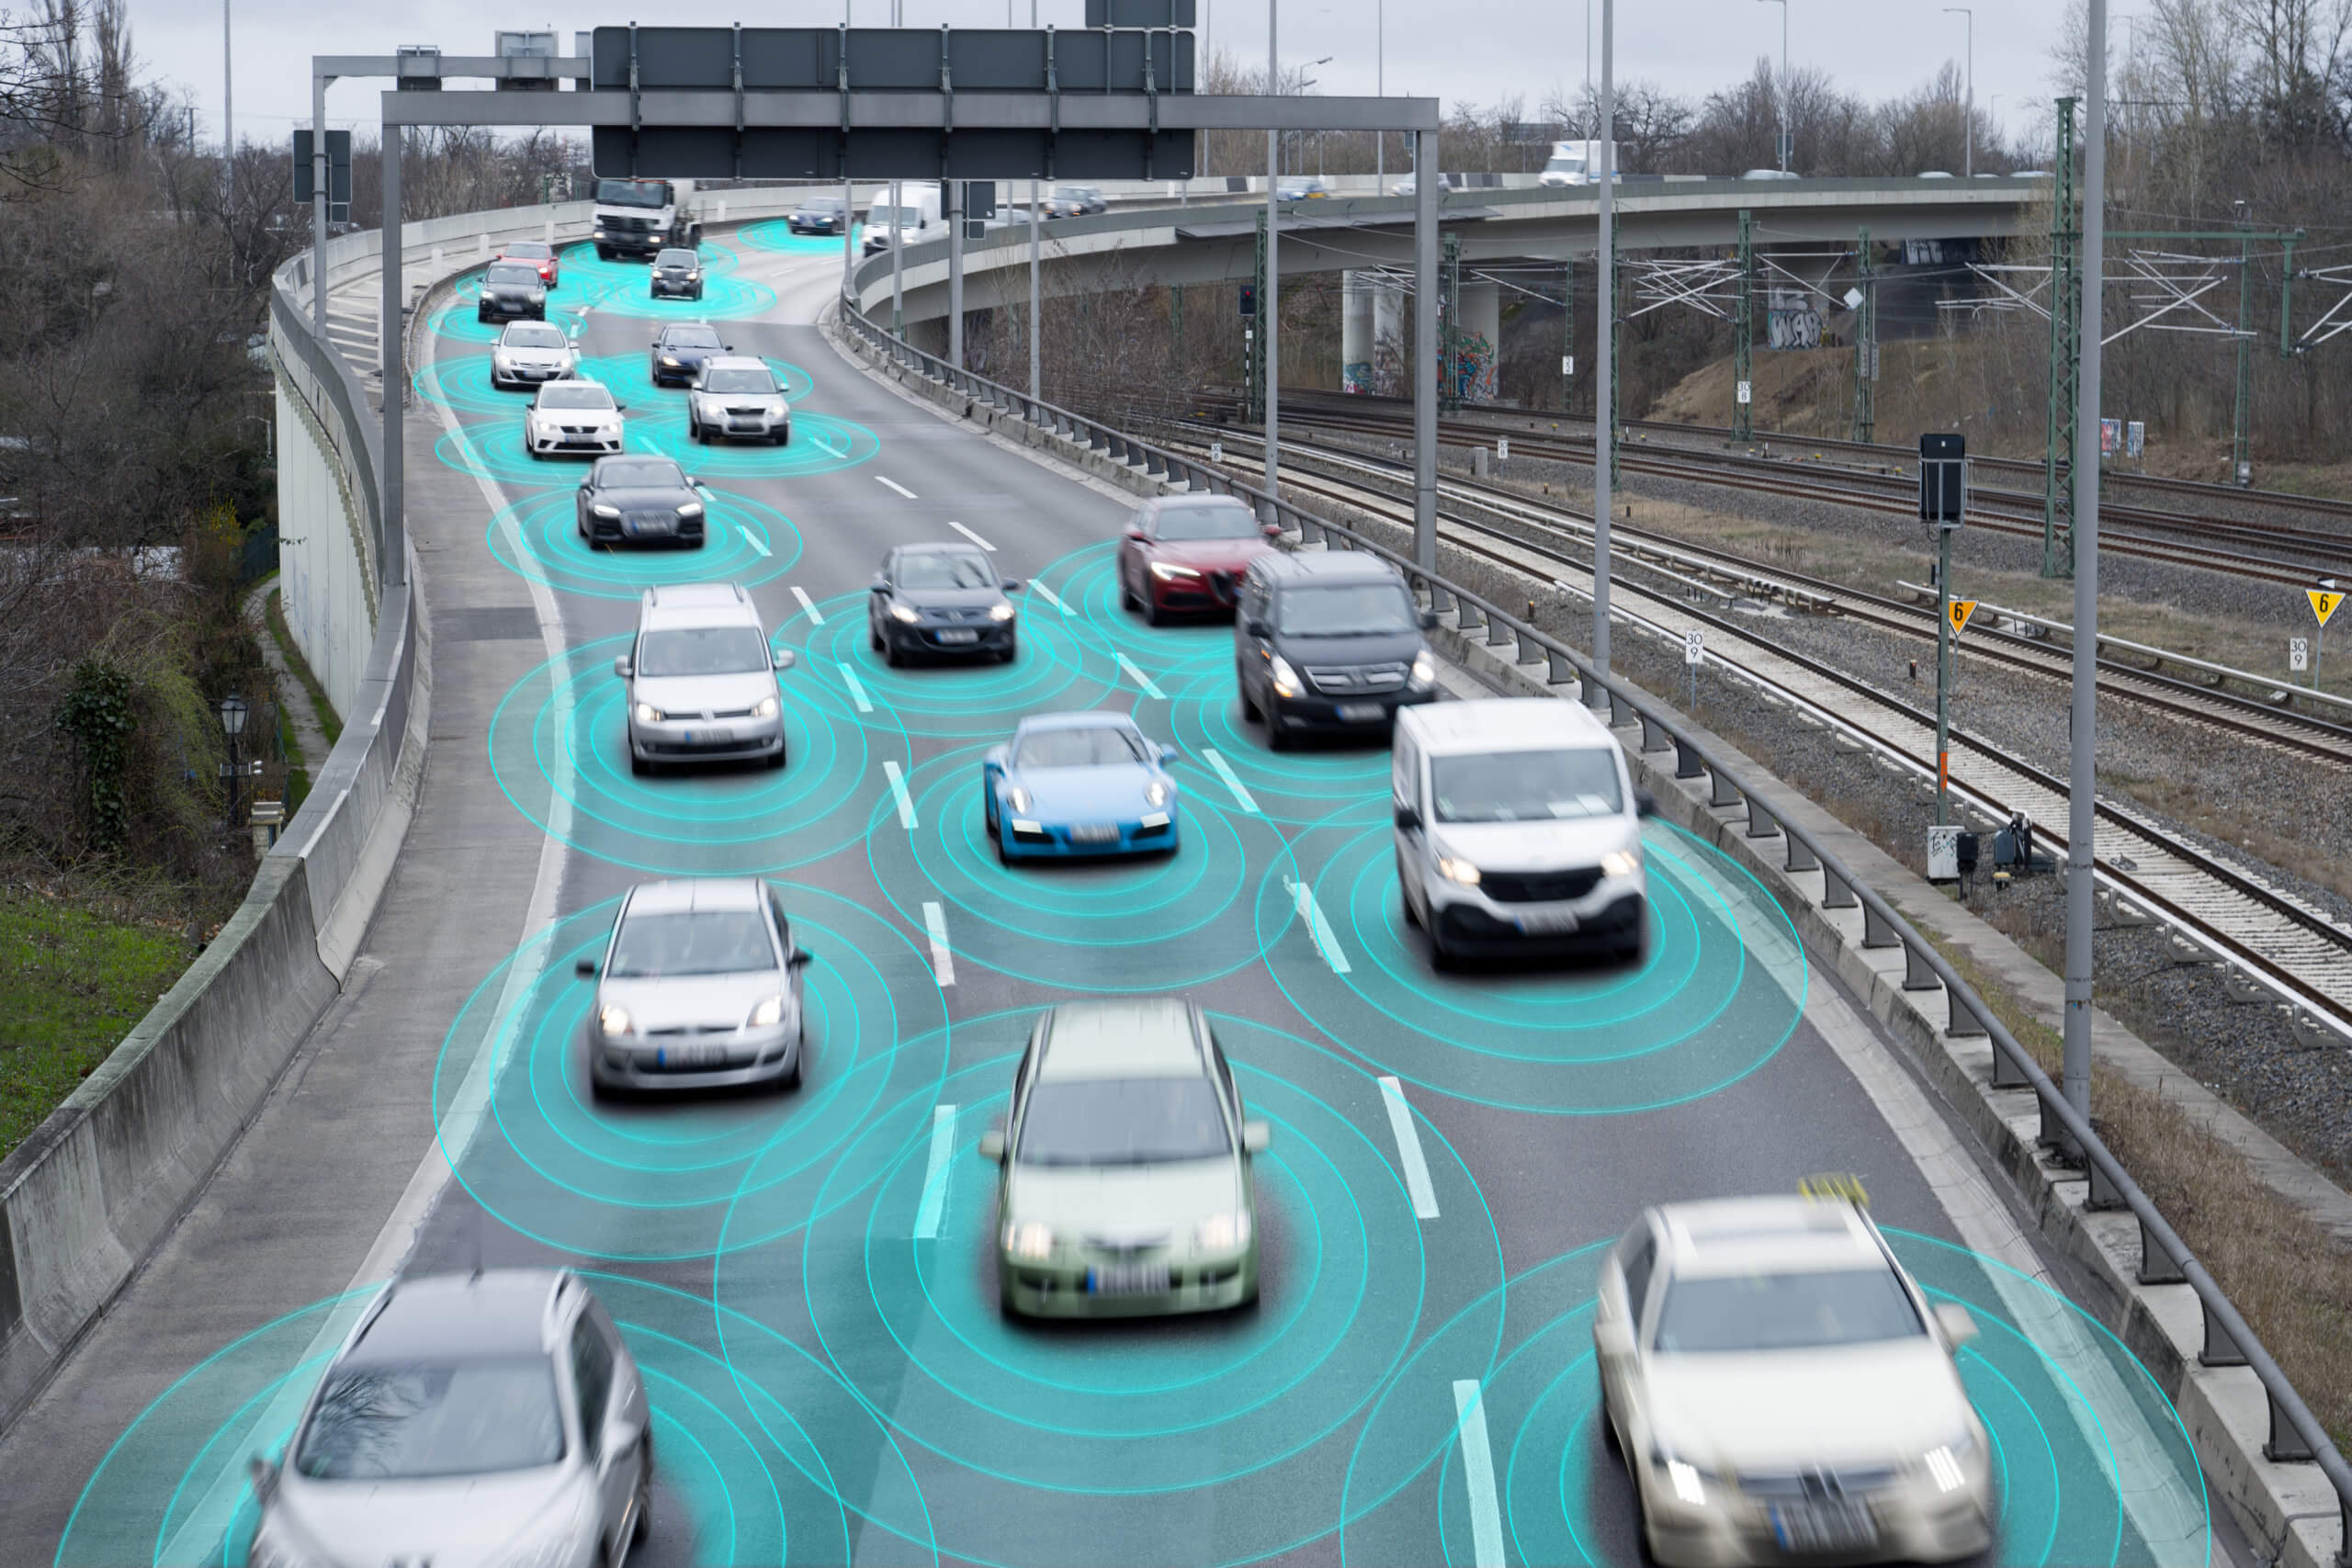 Self-driving cars, which are robots, on a highway.